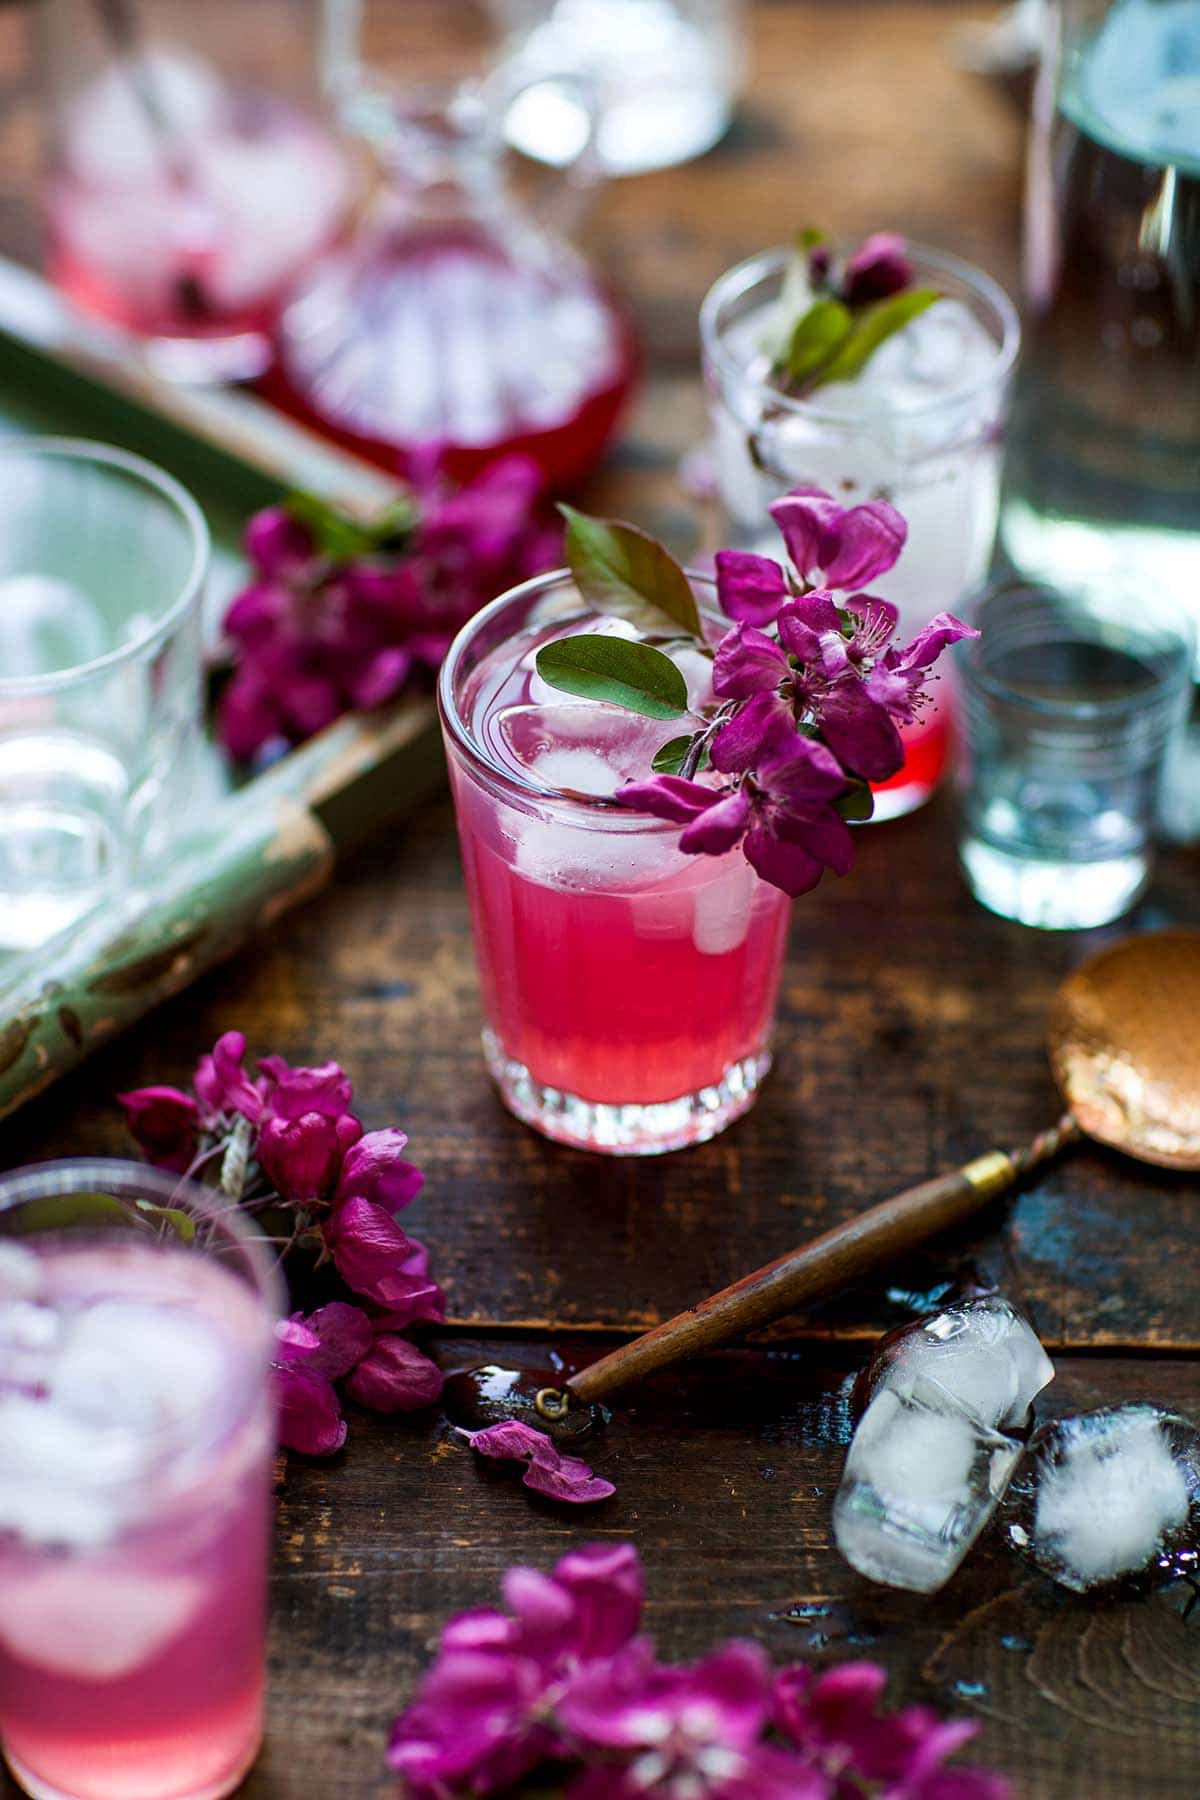 One bright pink cocktail made with rhubarb simple syrup in a small glass, garnished with pink apple blossoms.